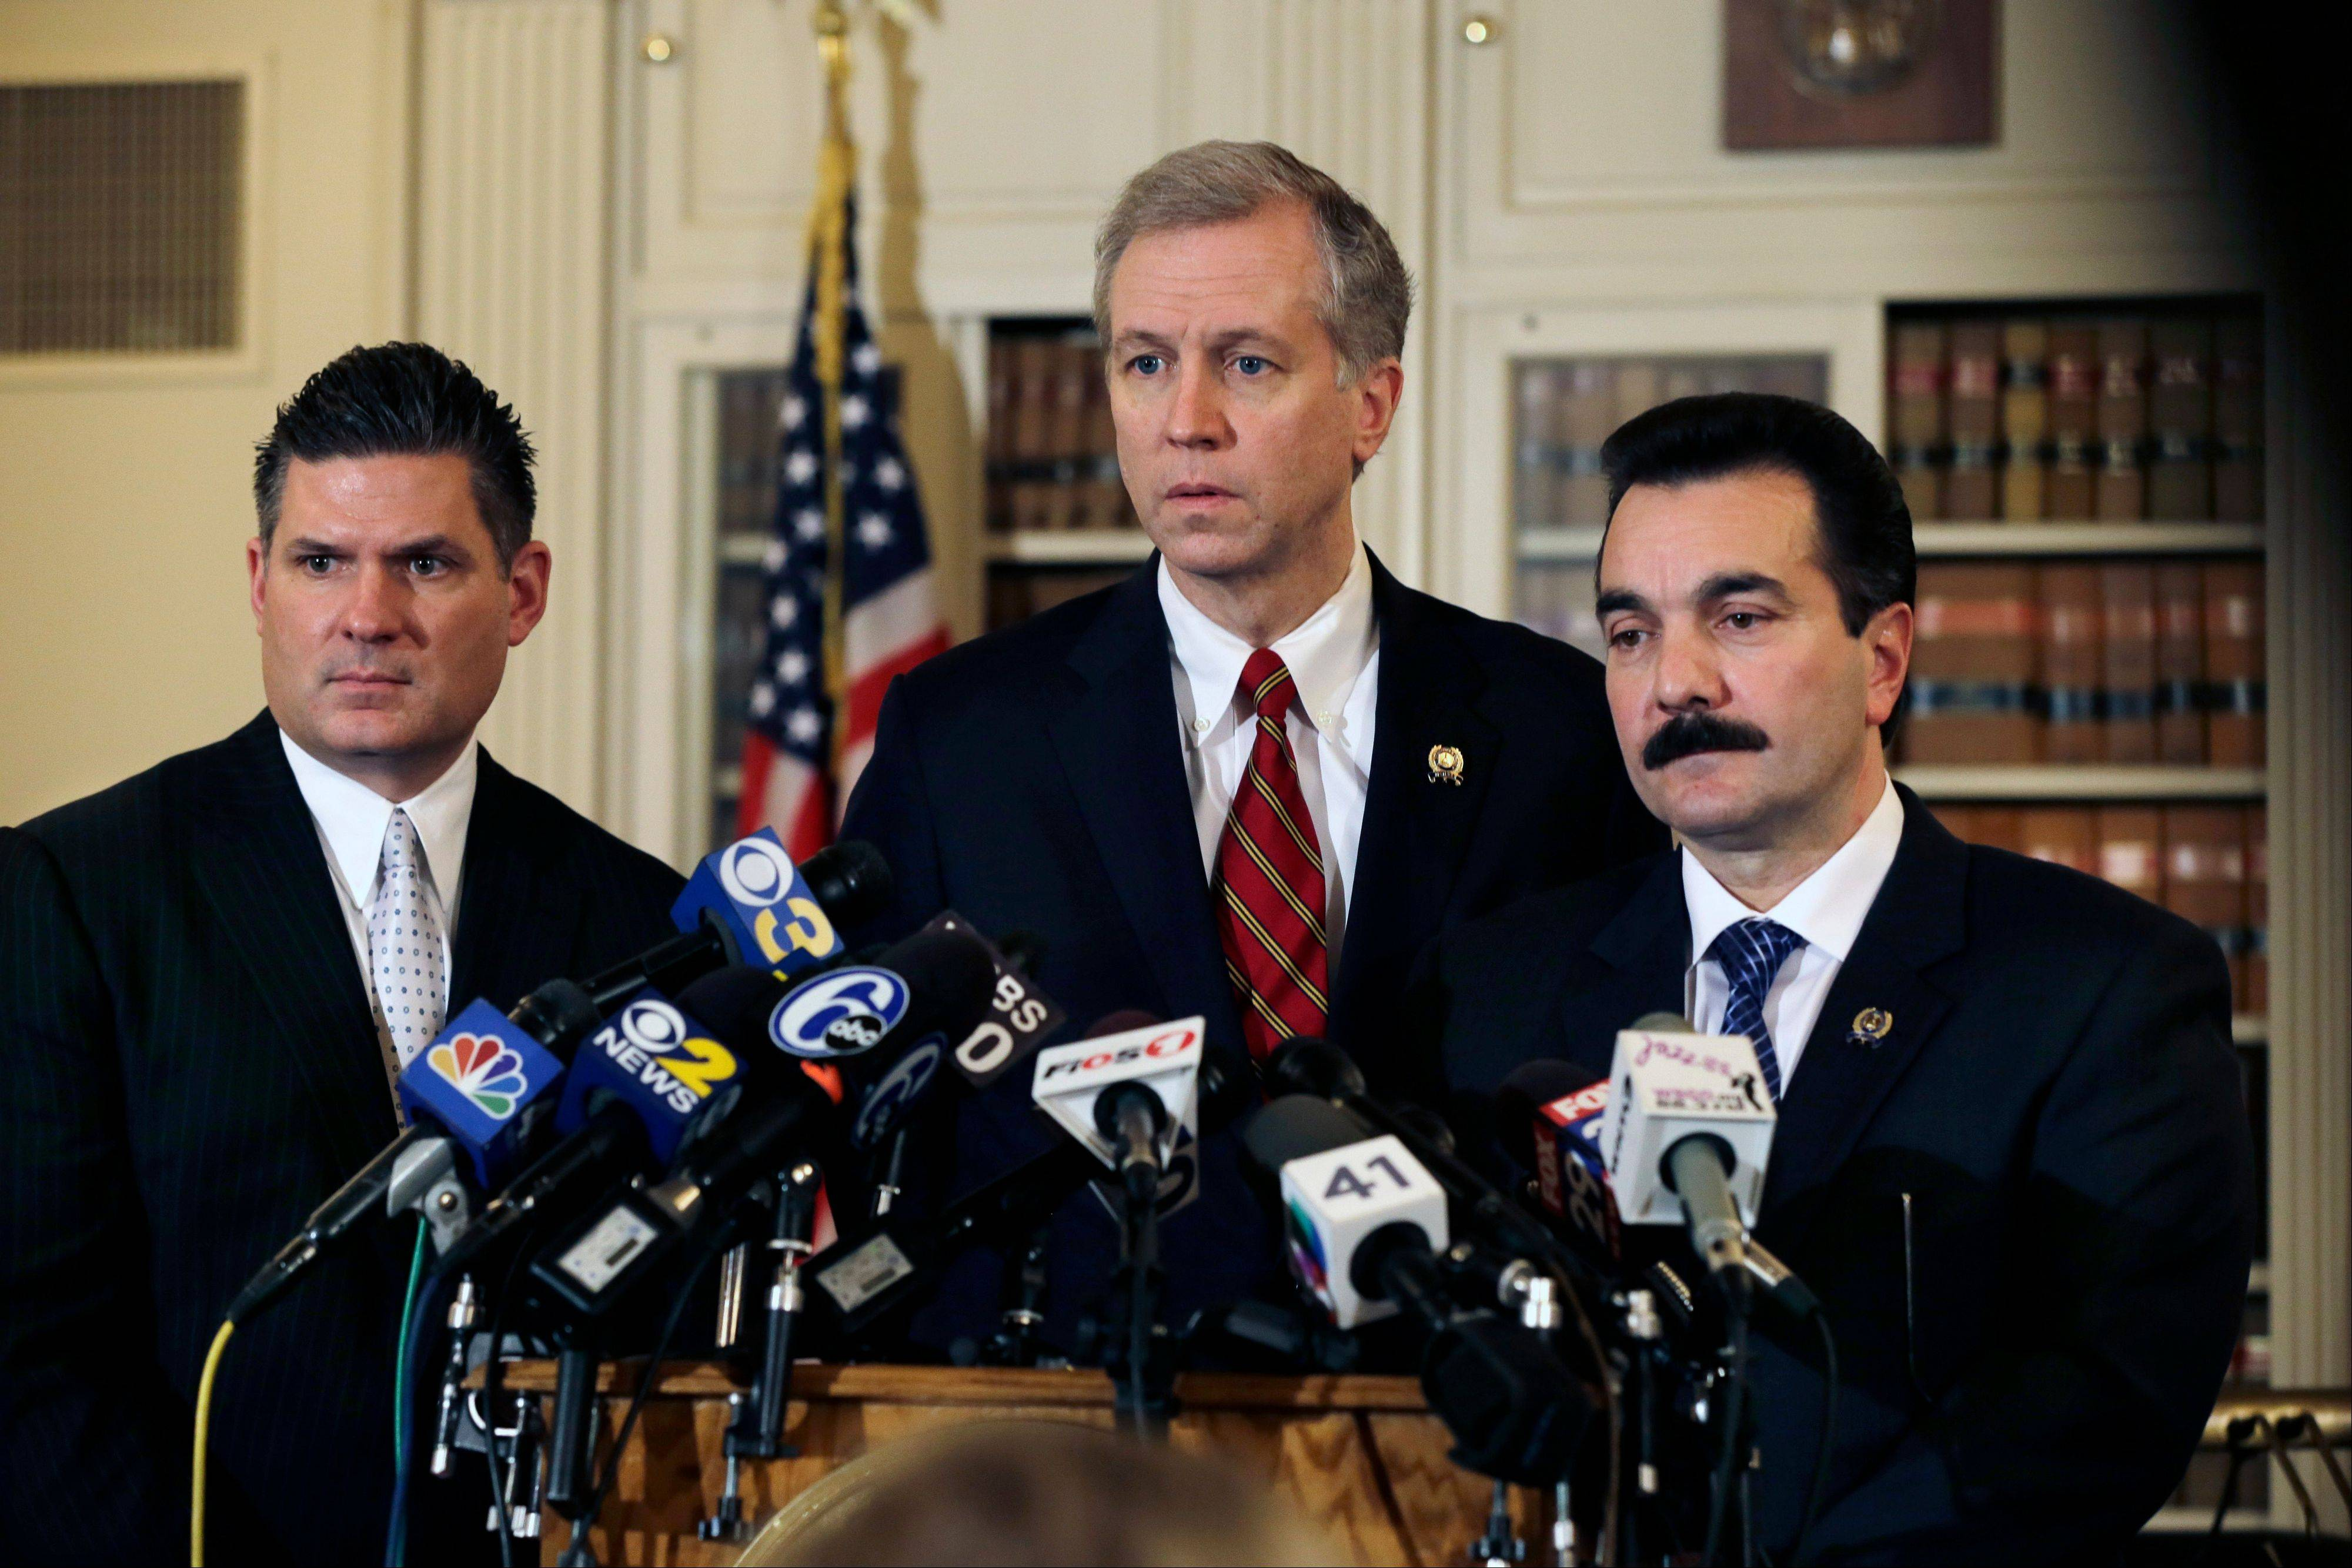 New Jersey Assemblymen John S. Wisniewski, center, Lou D. Greenwald, left, and incoming Assembly Speaker Vincent Prieto, all Democrats, address the media Monday in Trenton, N.J. Greenwald said an investigation into massive local traffic jams that has ensnared Gov. Chris Christie�s administration has grown into an abuse of power probe.